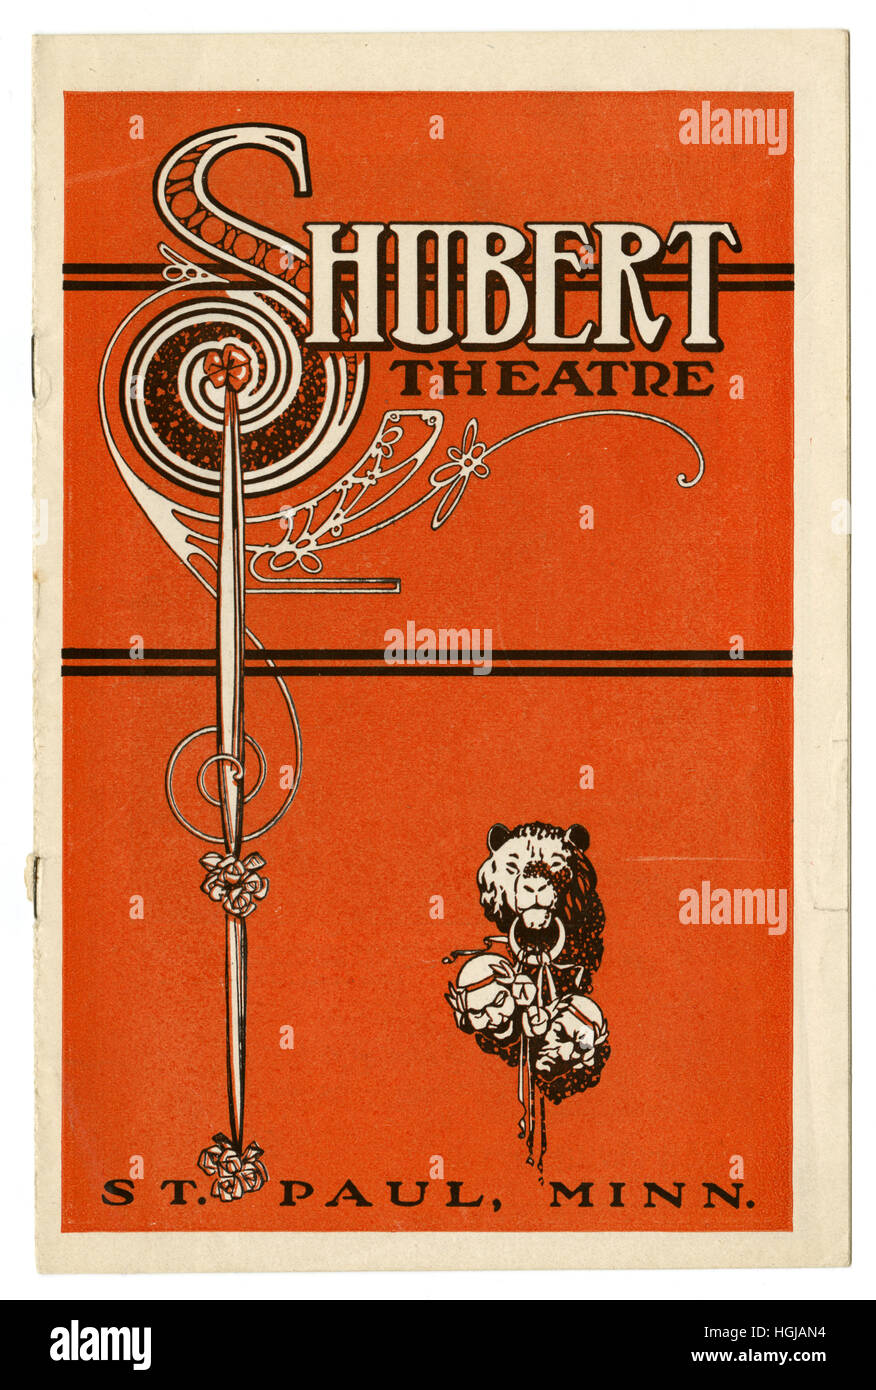 Antique 1914 theater program from Schubert Theatre in St. Paul, Minnesota. - Stock Image